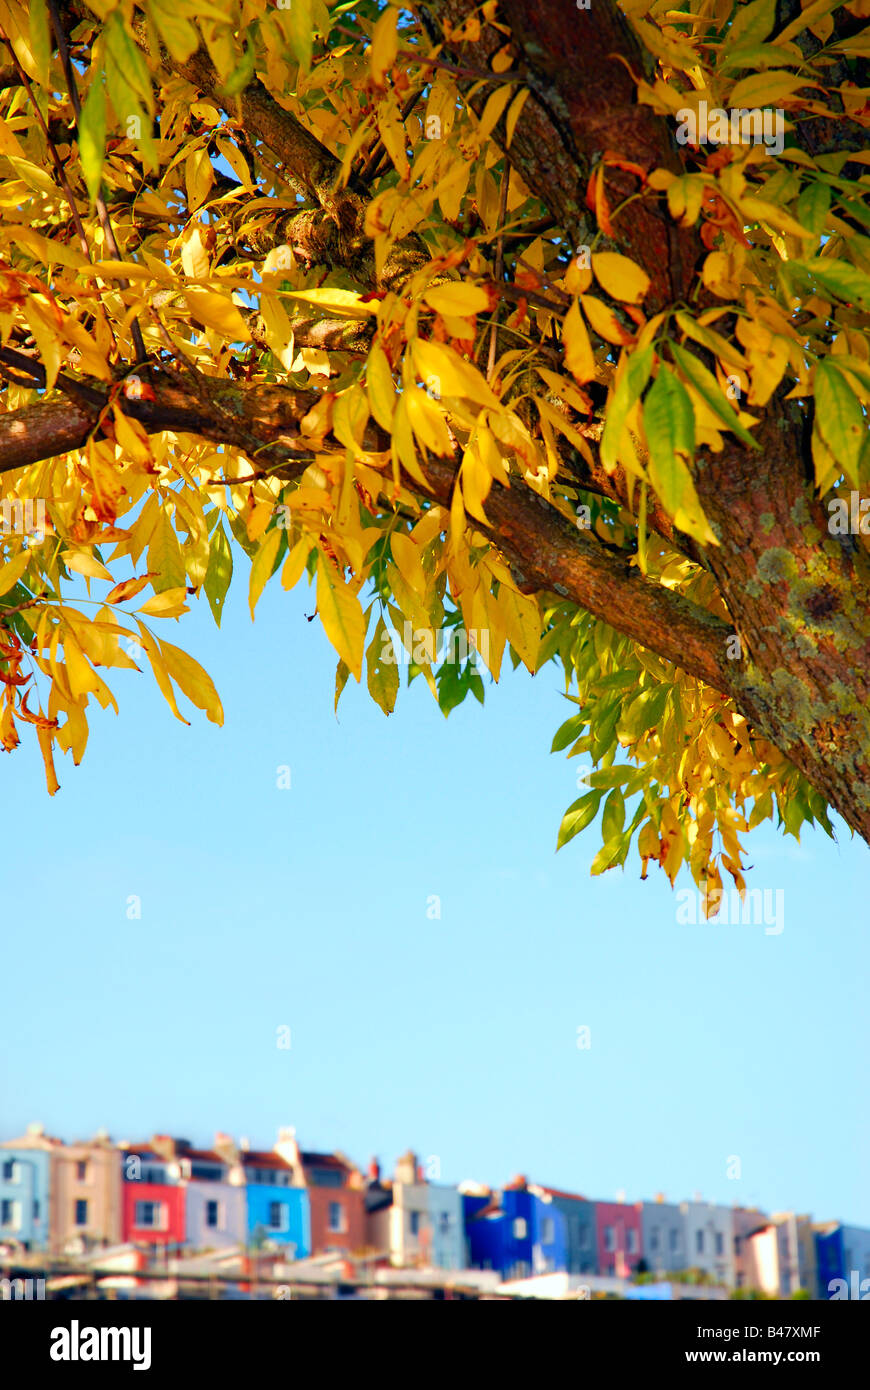 Colourful Autumn leaves on a tree over hanging a defocused row of terraced housing - Stock Image